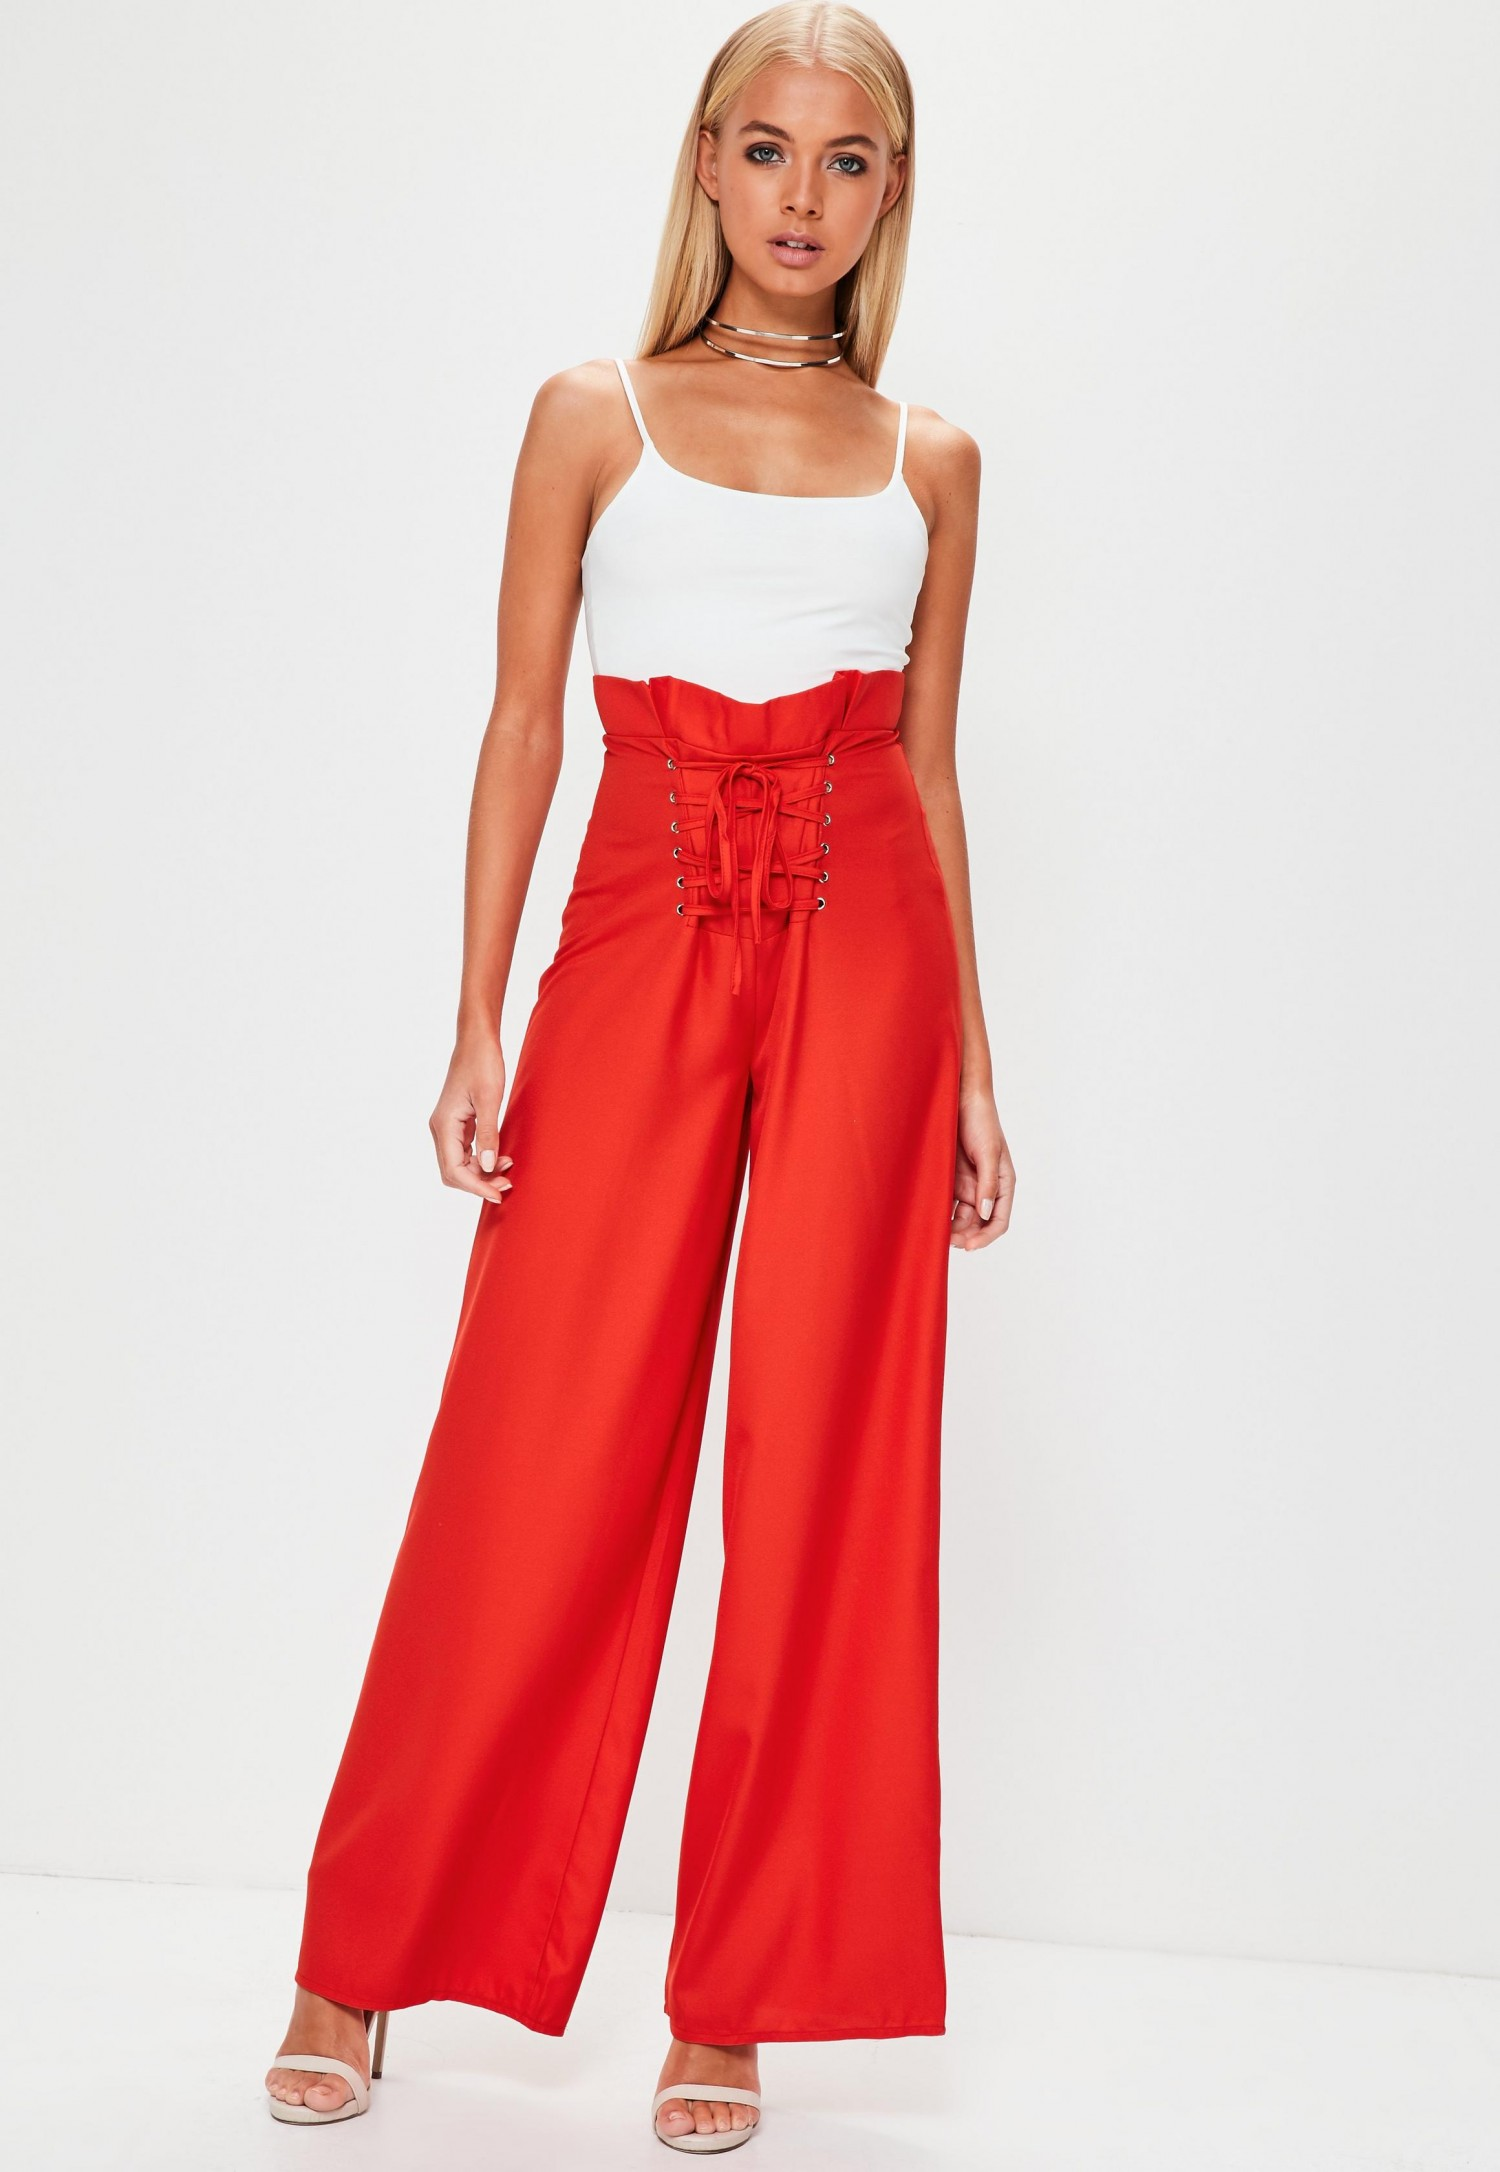 premium-red-lace-up-corset-waist-wide-leg-trousers